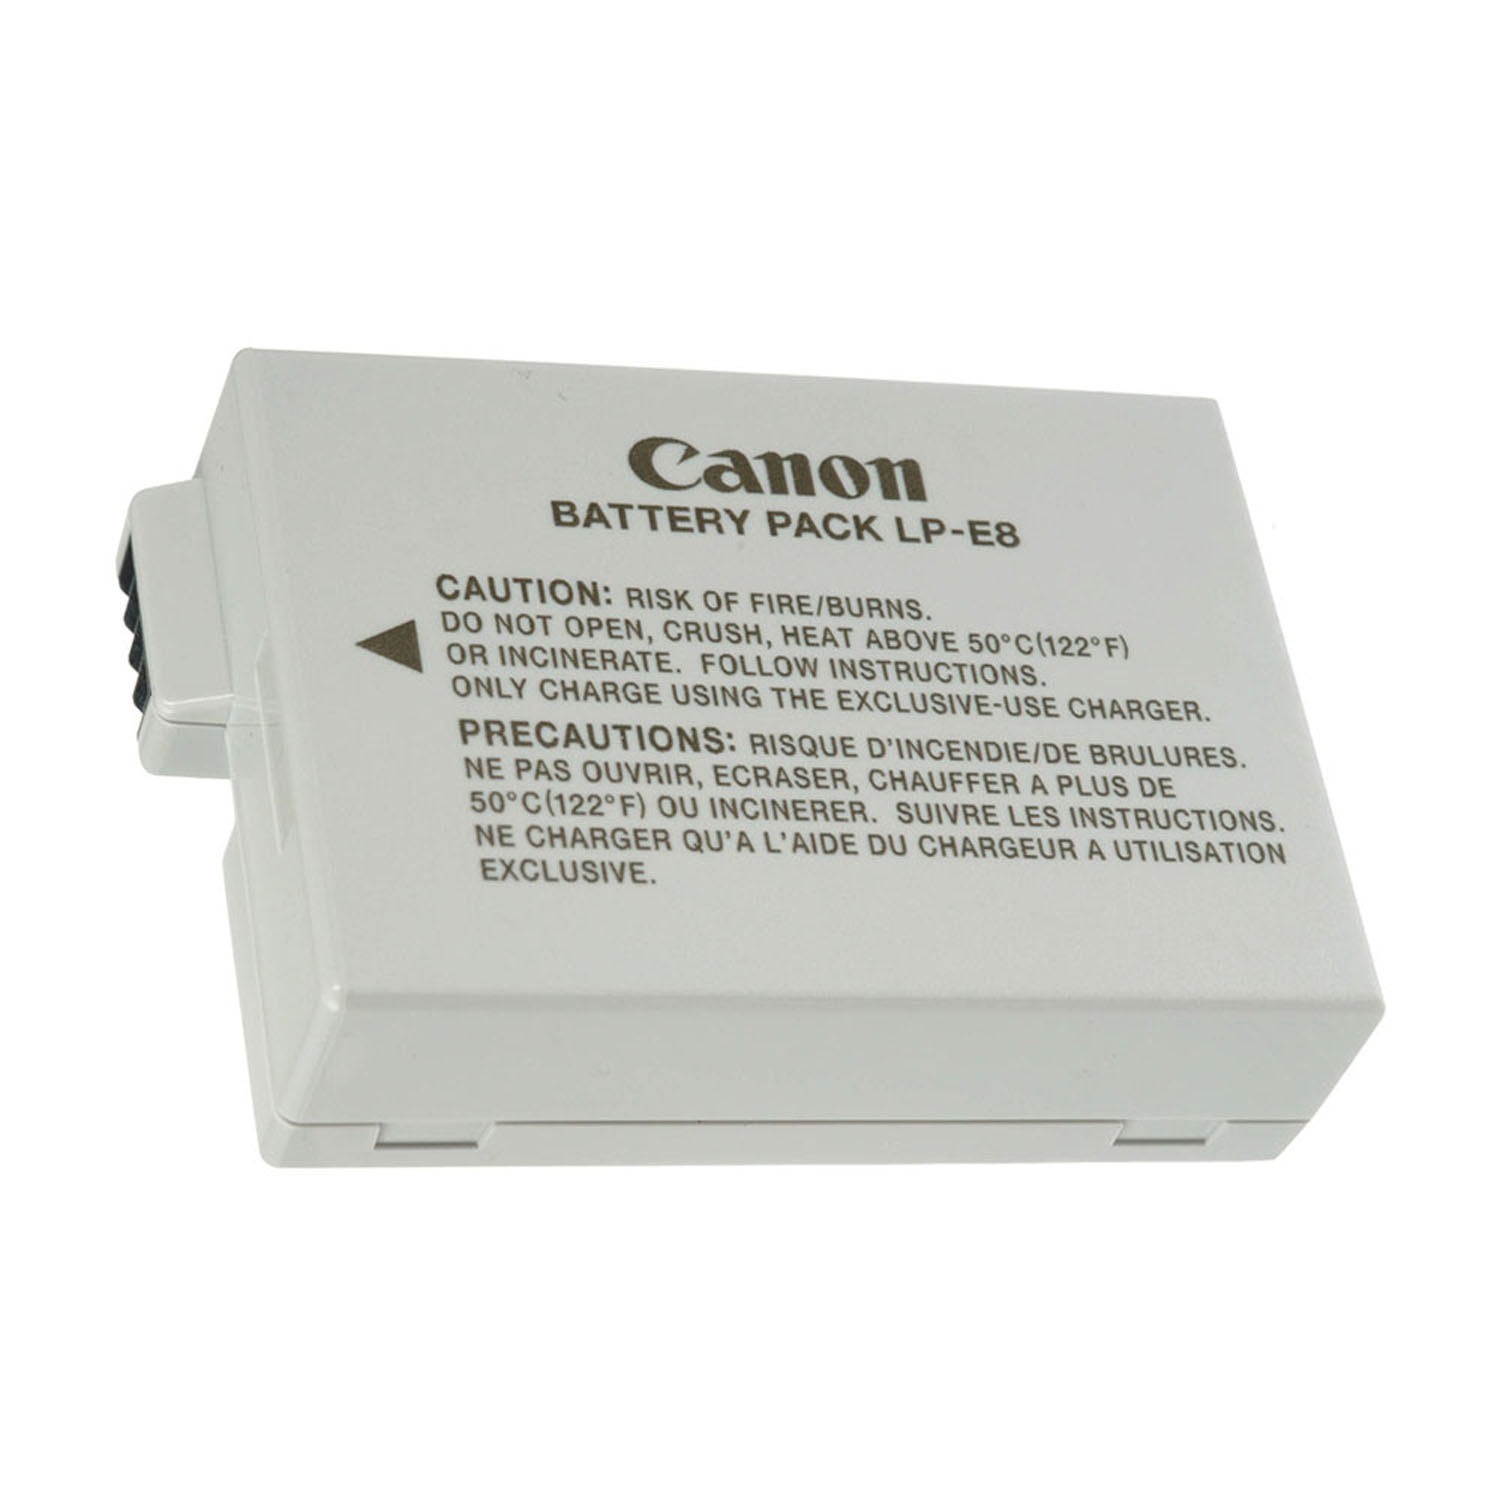 باطری LP-E8 کانن      Canon Battery Pack LP-E8